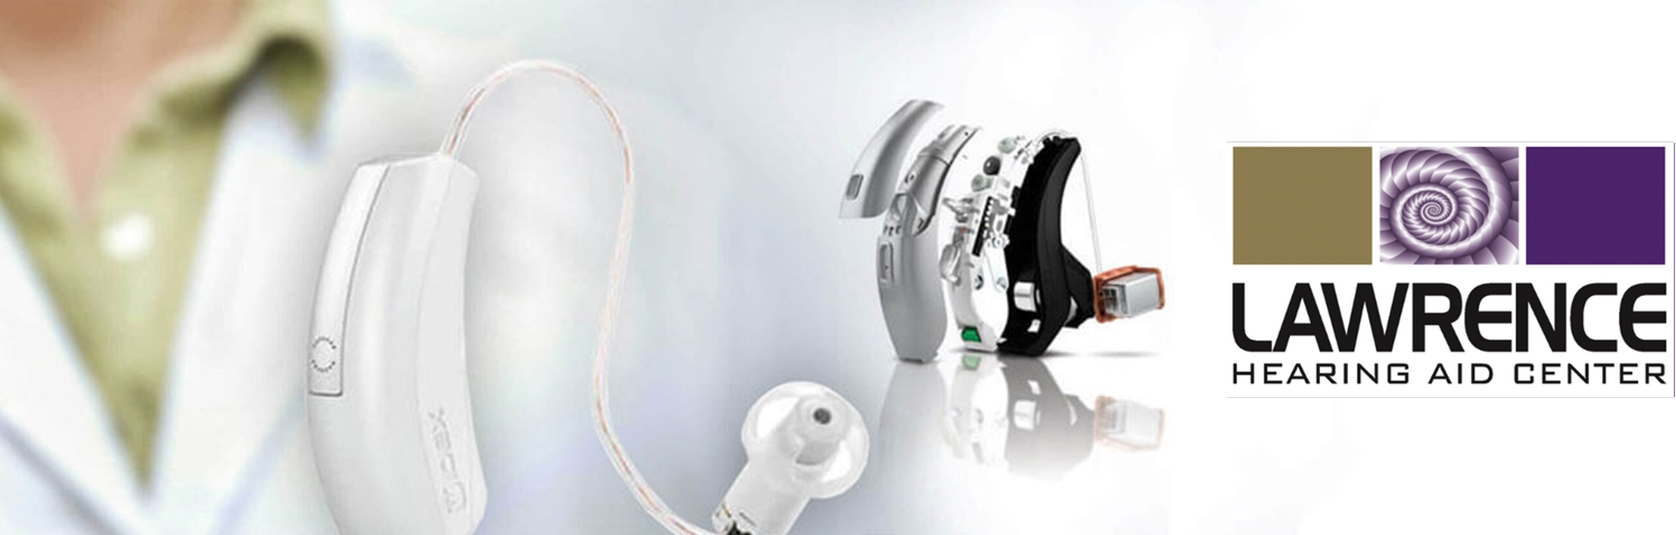 Lawrence Hearing Aid Center (@lawrencehearingaidcenter) Cover Image